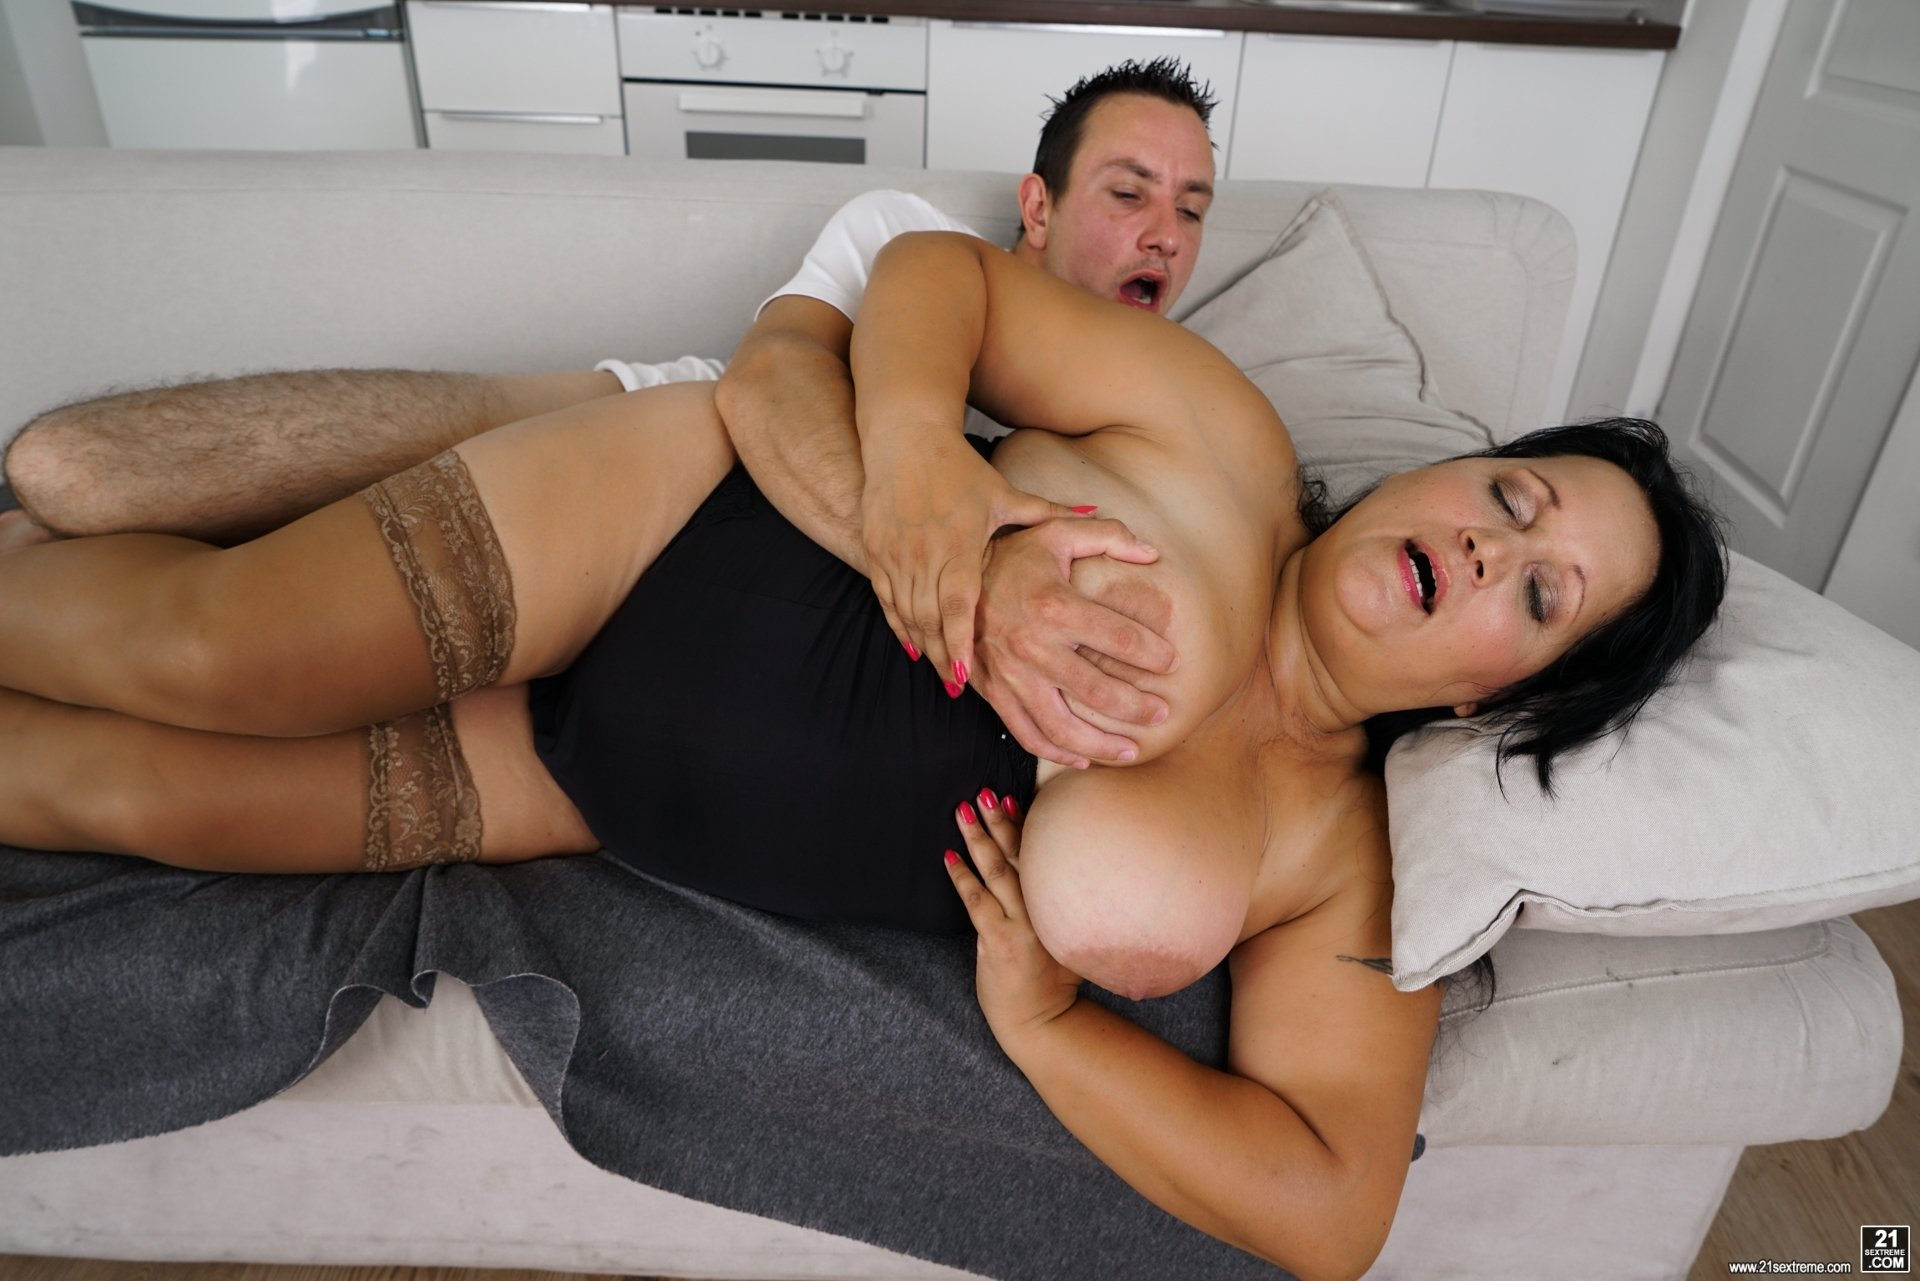 Japanese asian husband sick wife horny and fuck naighboar sexy nude playboy girls